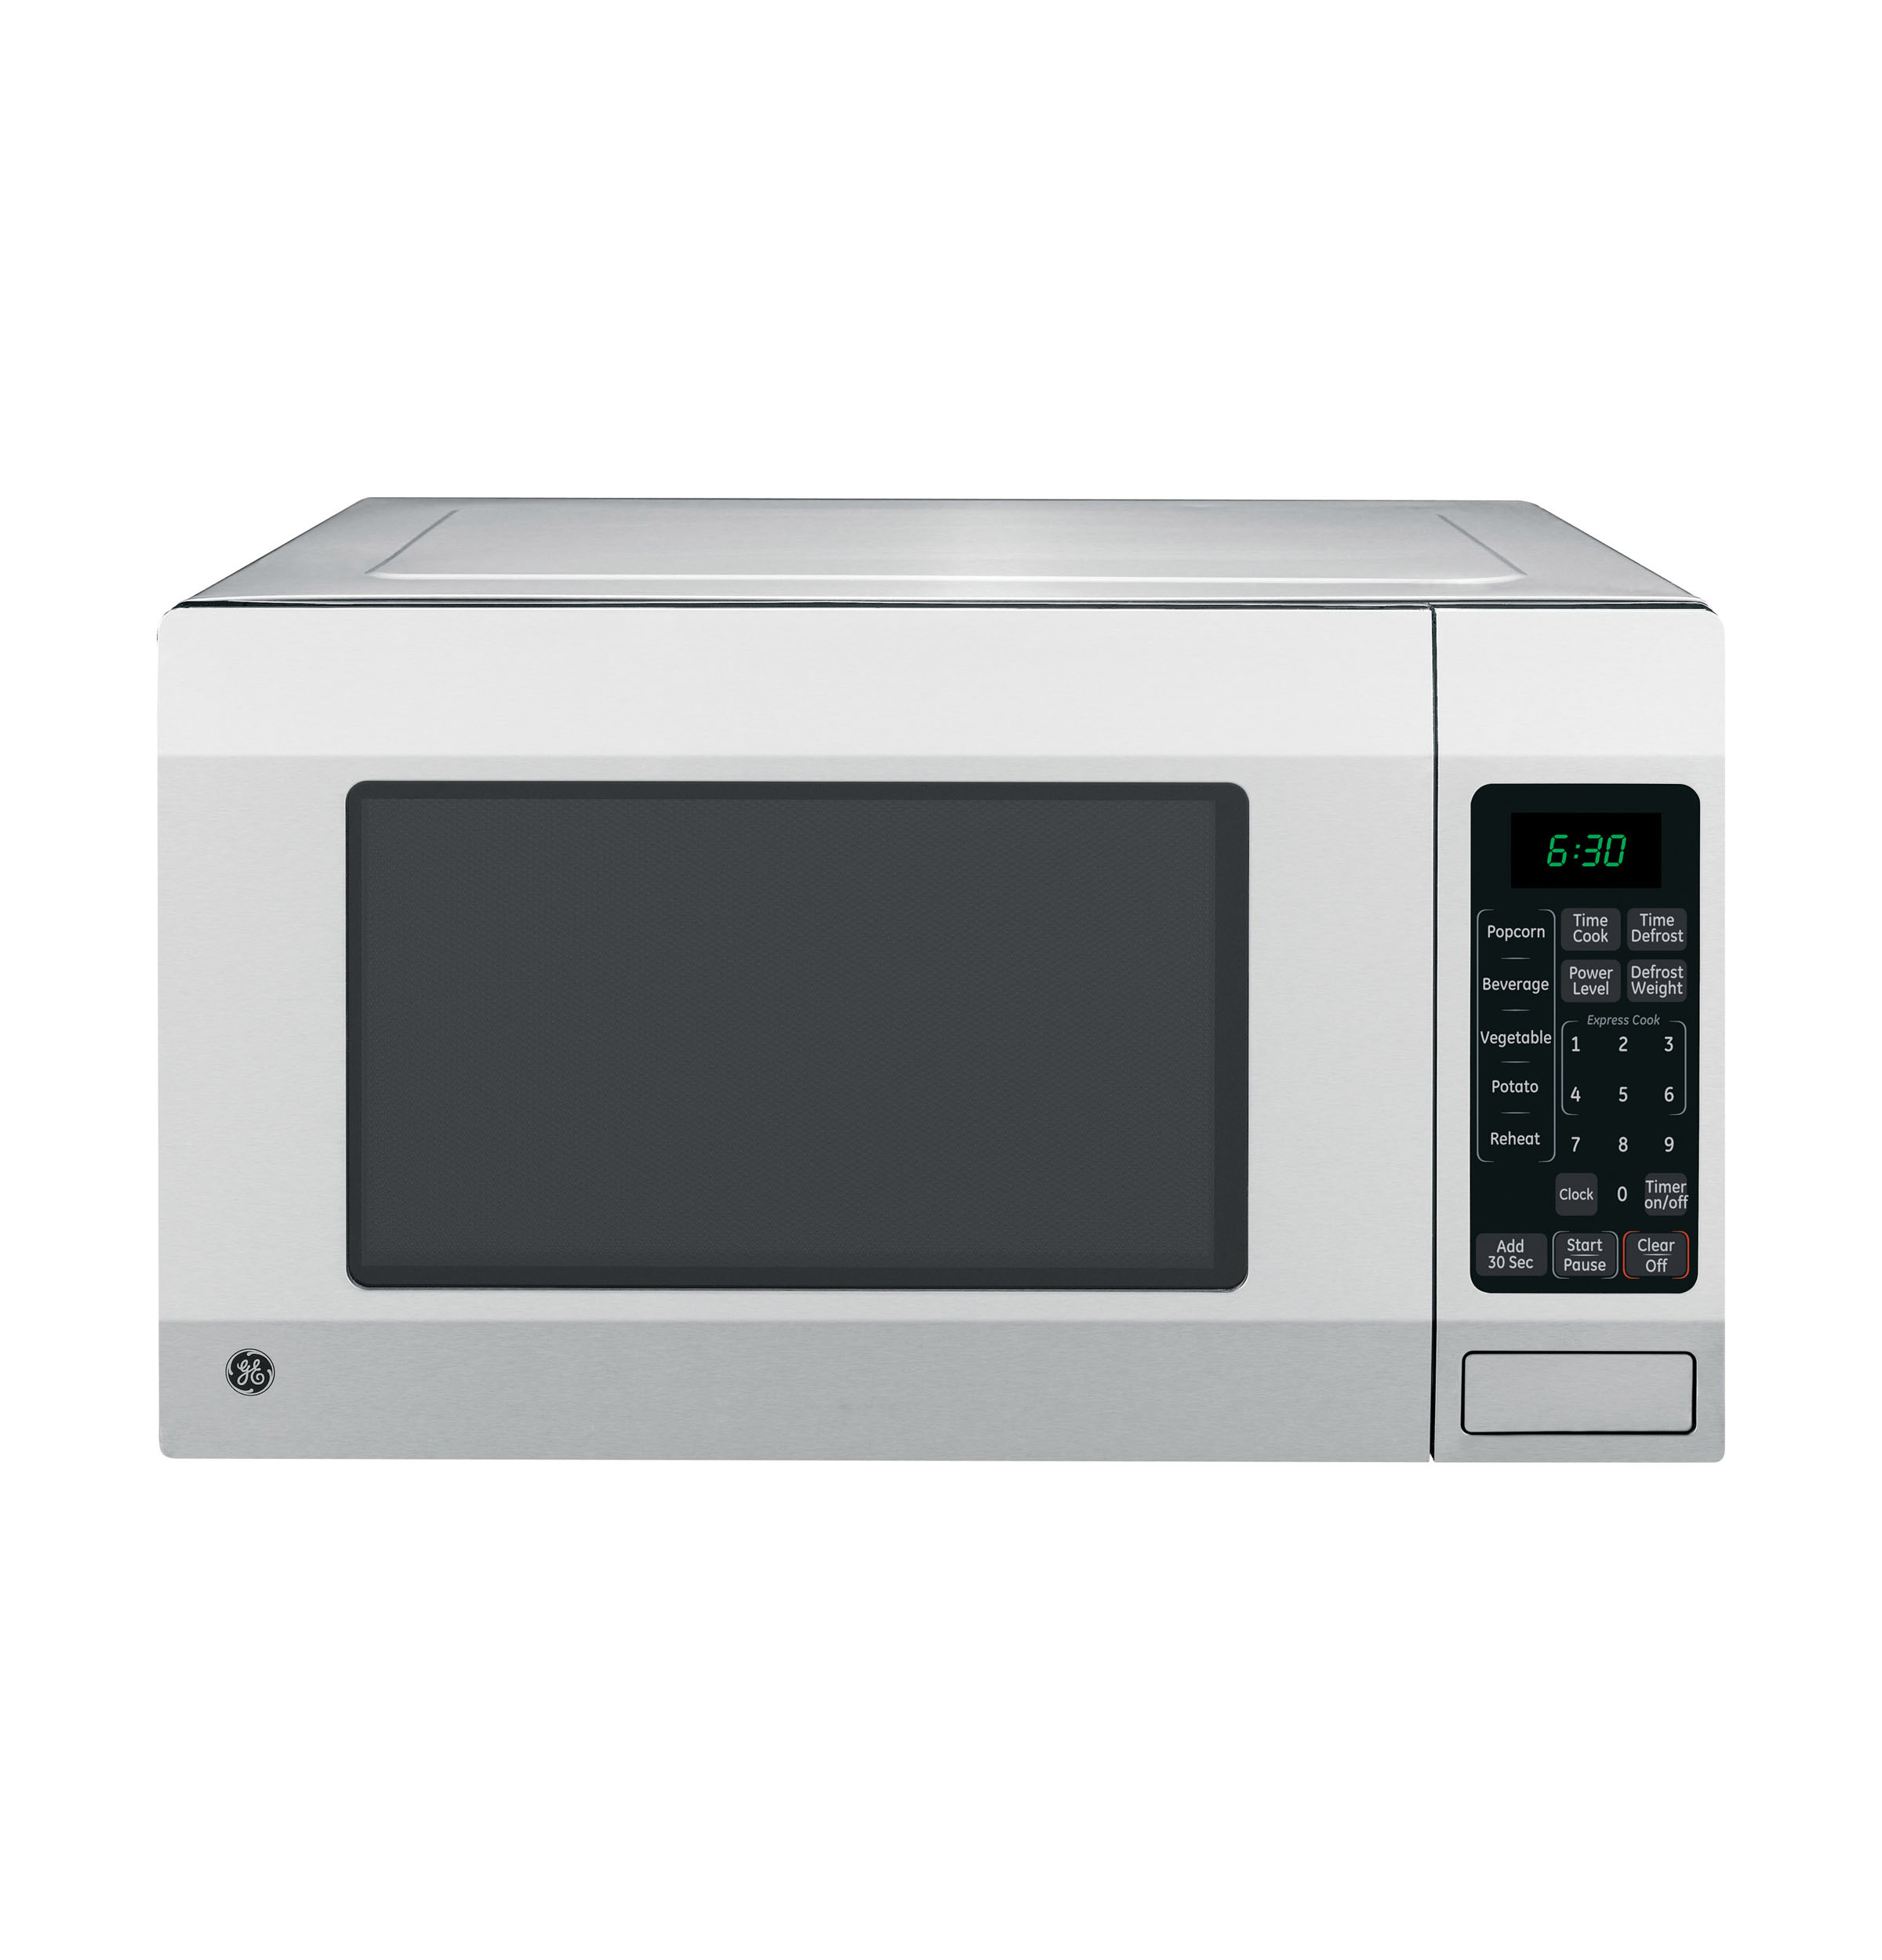 Ge Microwave Ovens ~ Ge cu ft countertop microwave oven jes srss